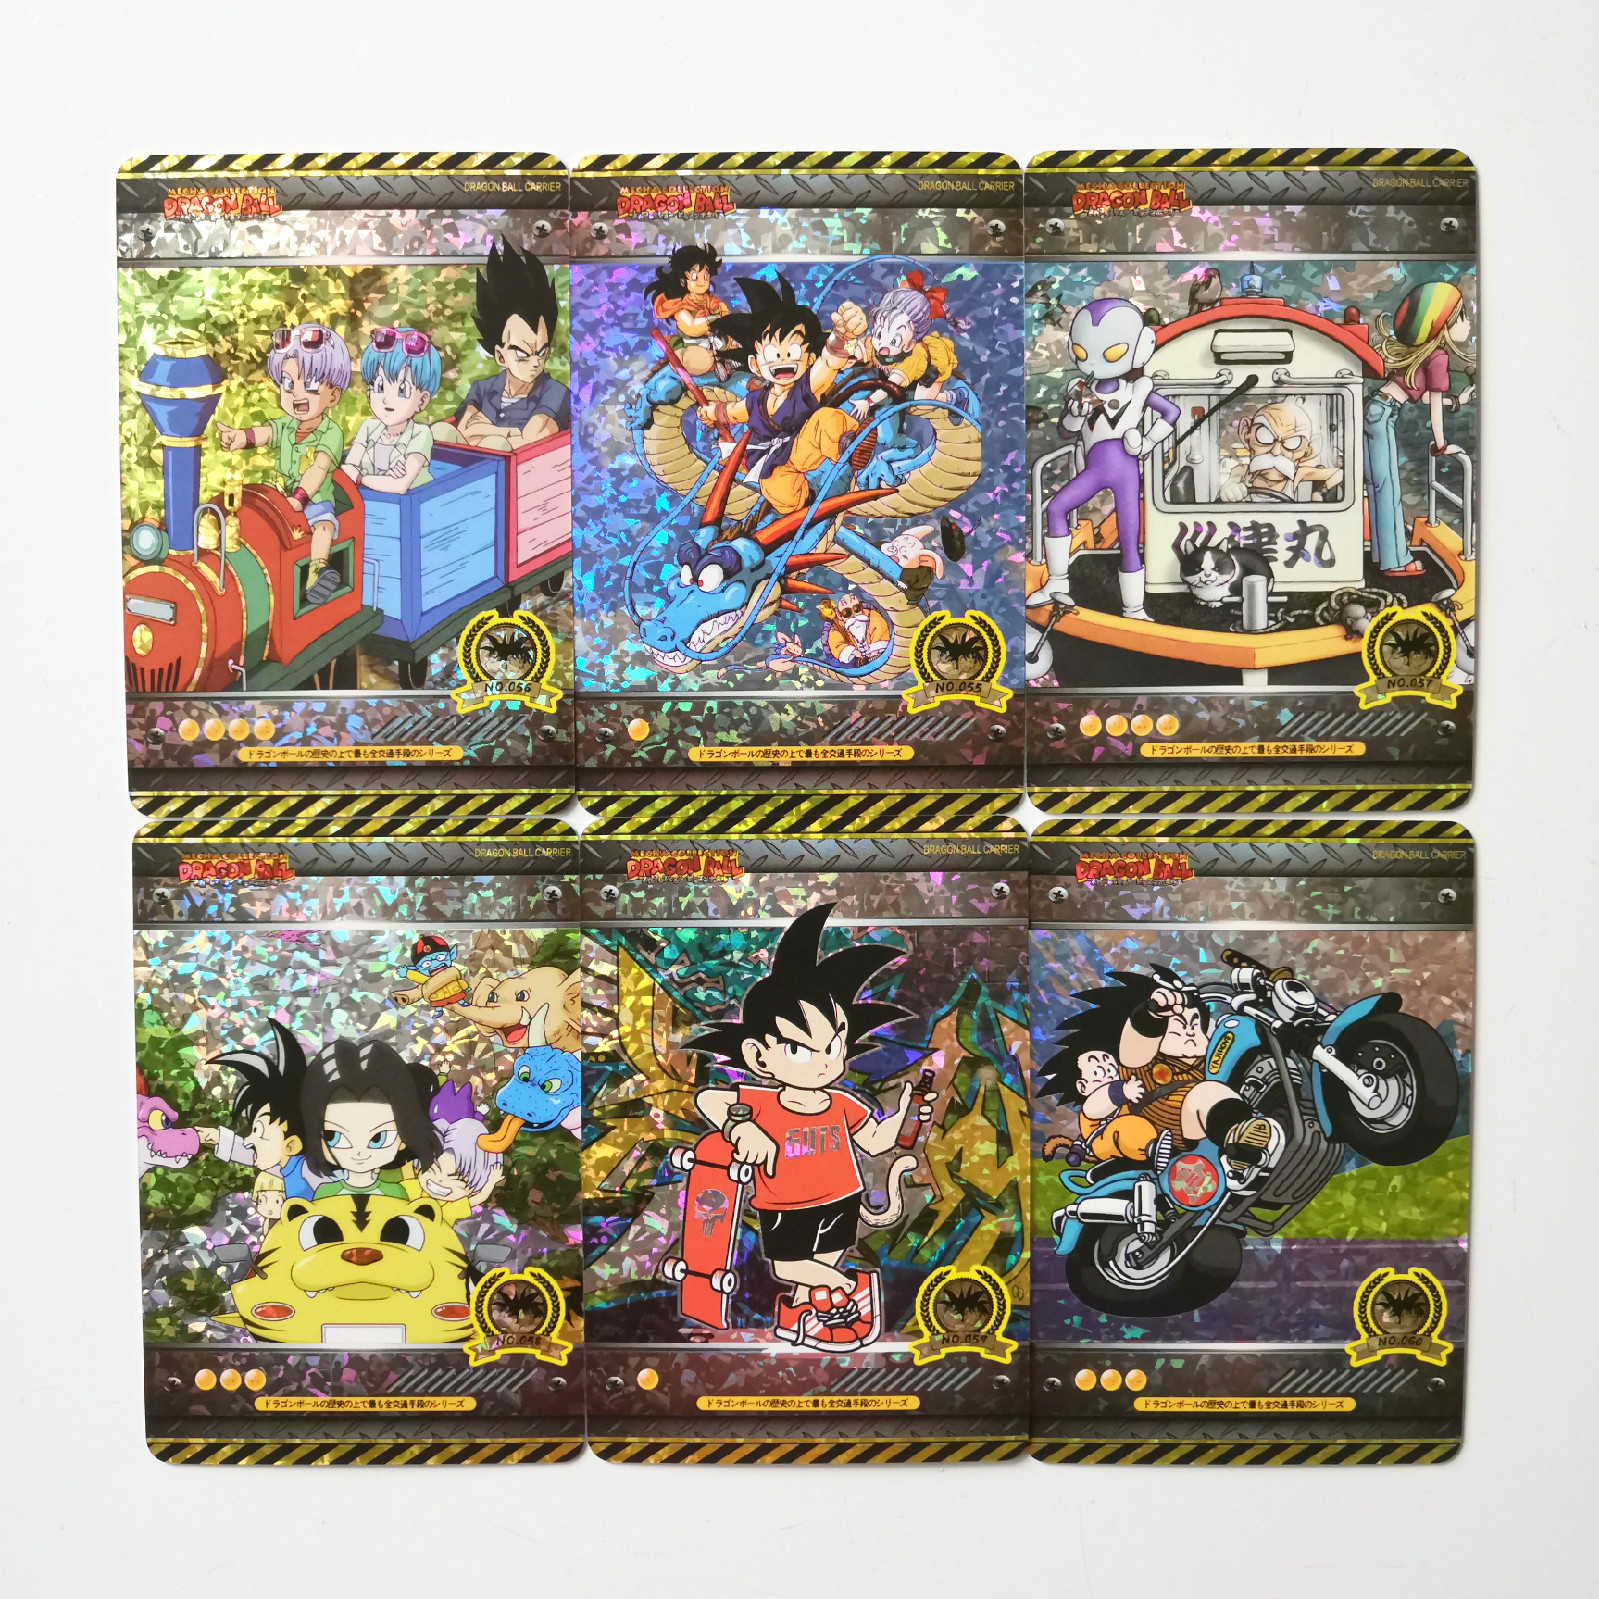 18pcs/set Super Dragon Ball Z Heroes Vehicle Fourth Bomb Battle Card Ultra Instinct Goku Vegeta Game Collection Cards